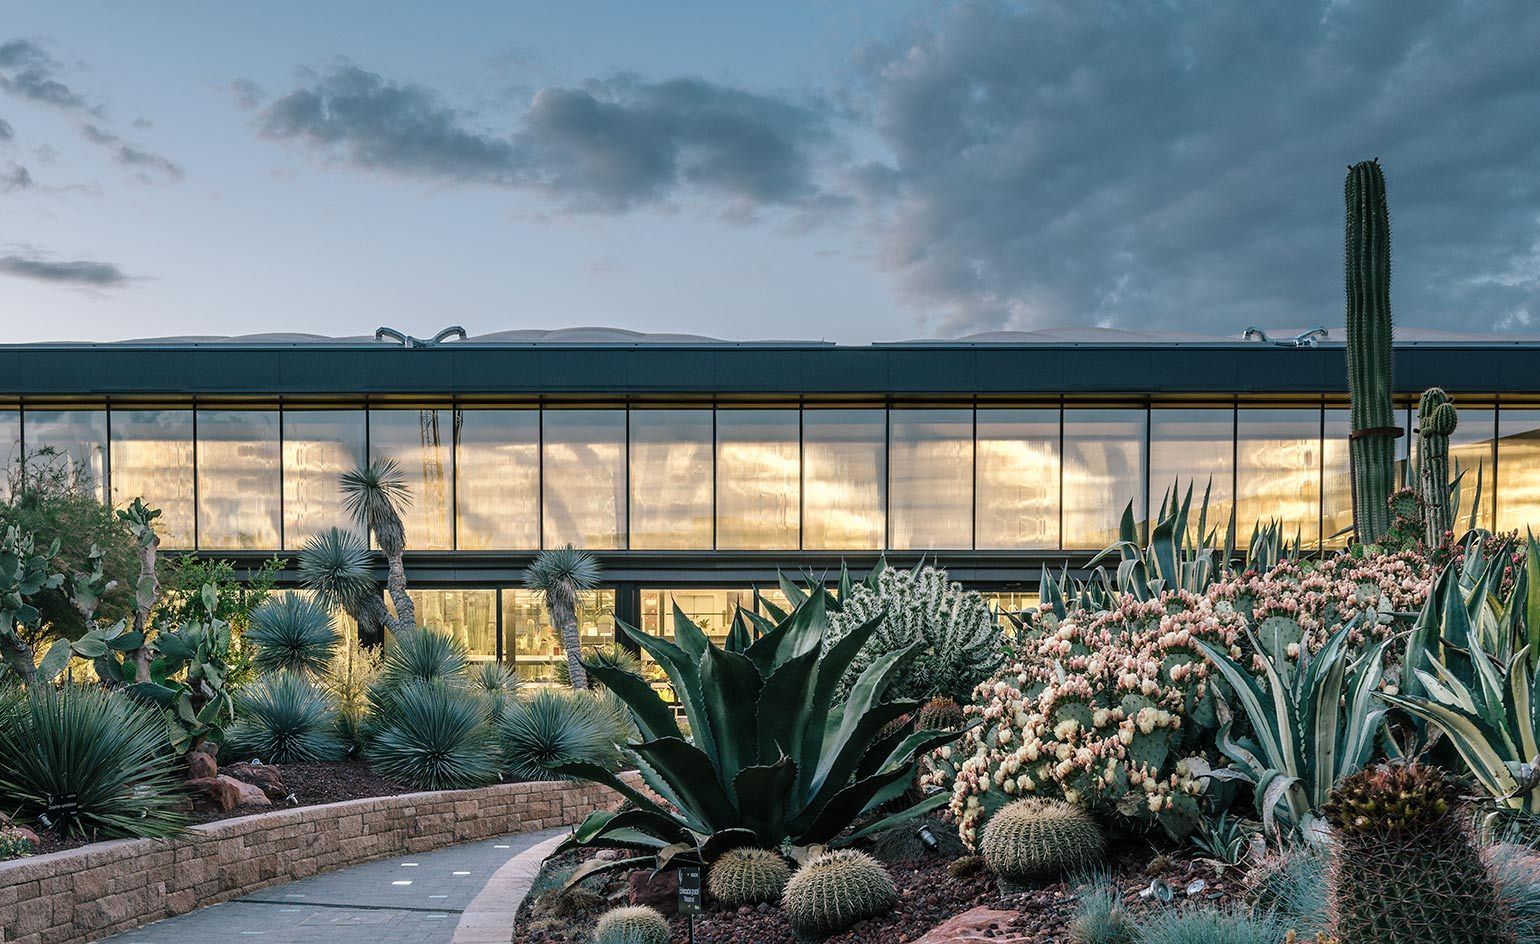 New Roots Europe S Largest Cactus Garden Springs From An